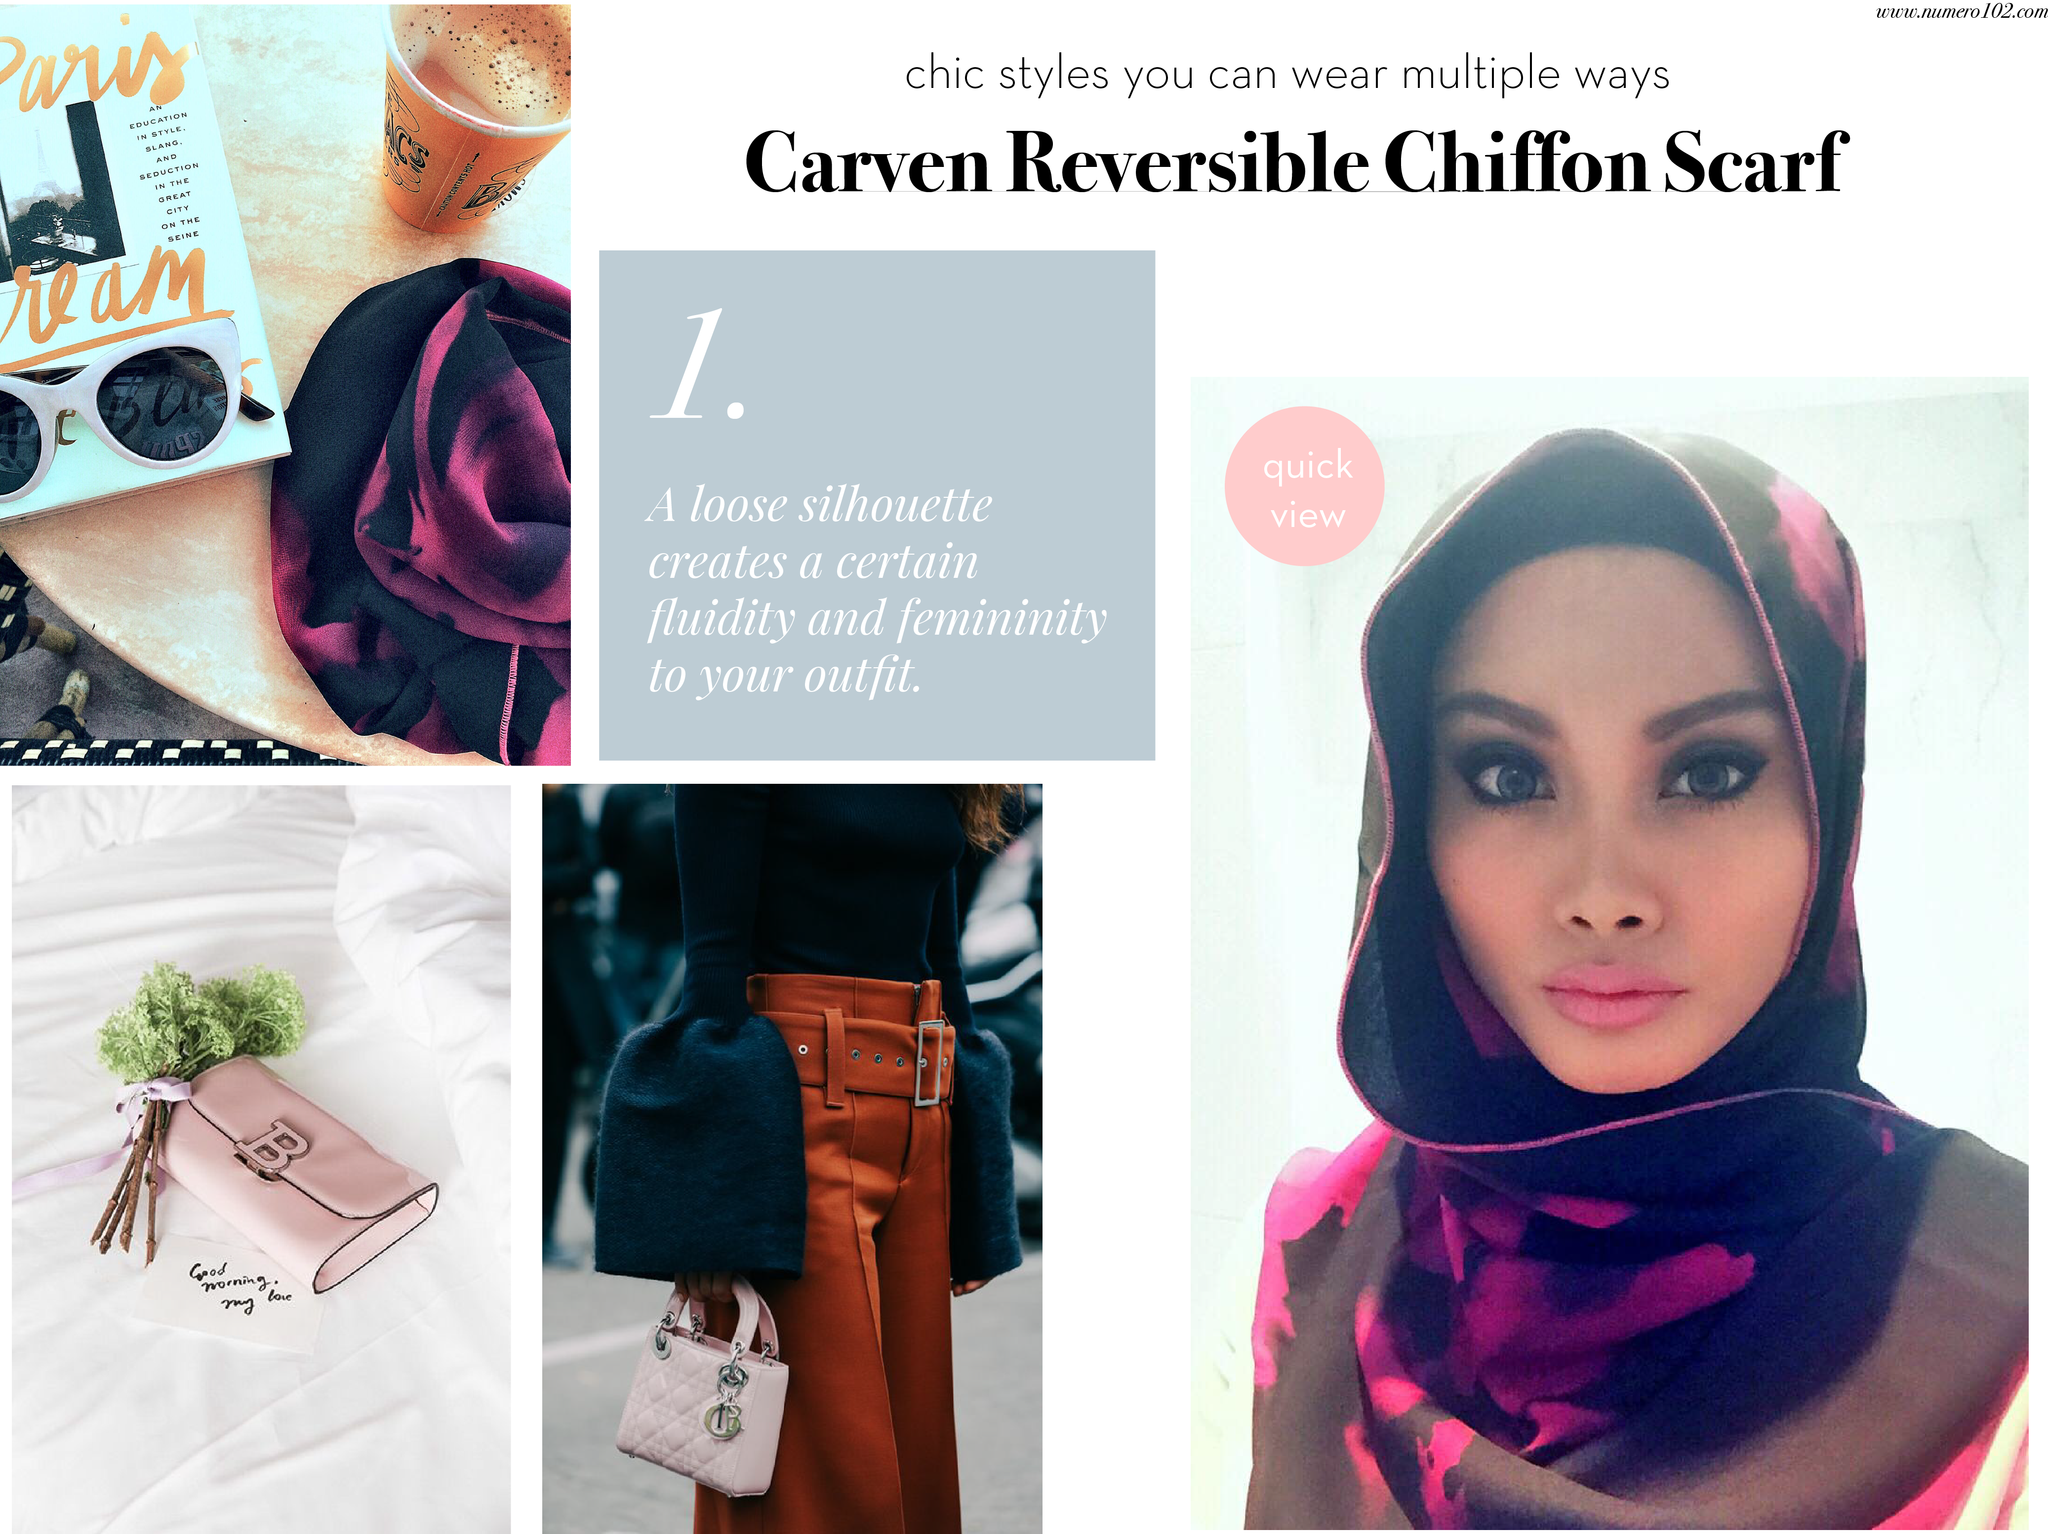 StyleMemo : Carven Reversible Chiffon Scarf – Le Journal Numero102